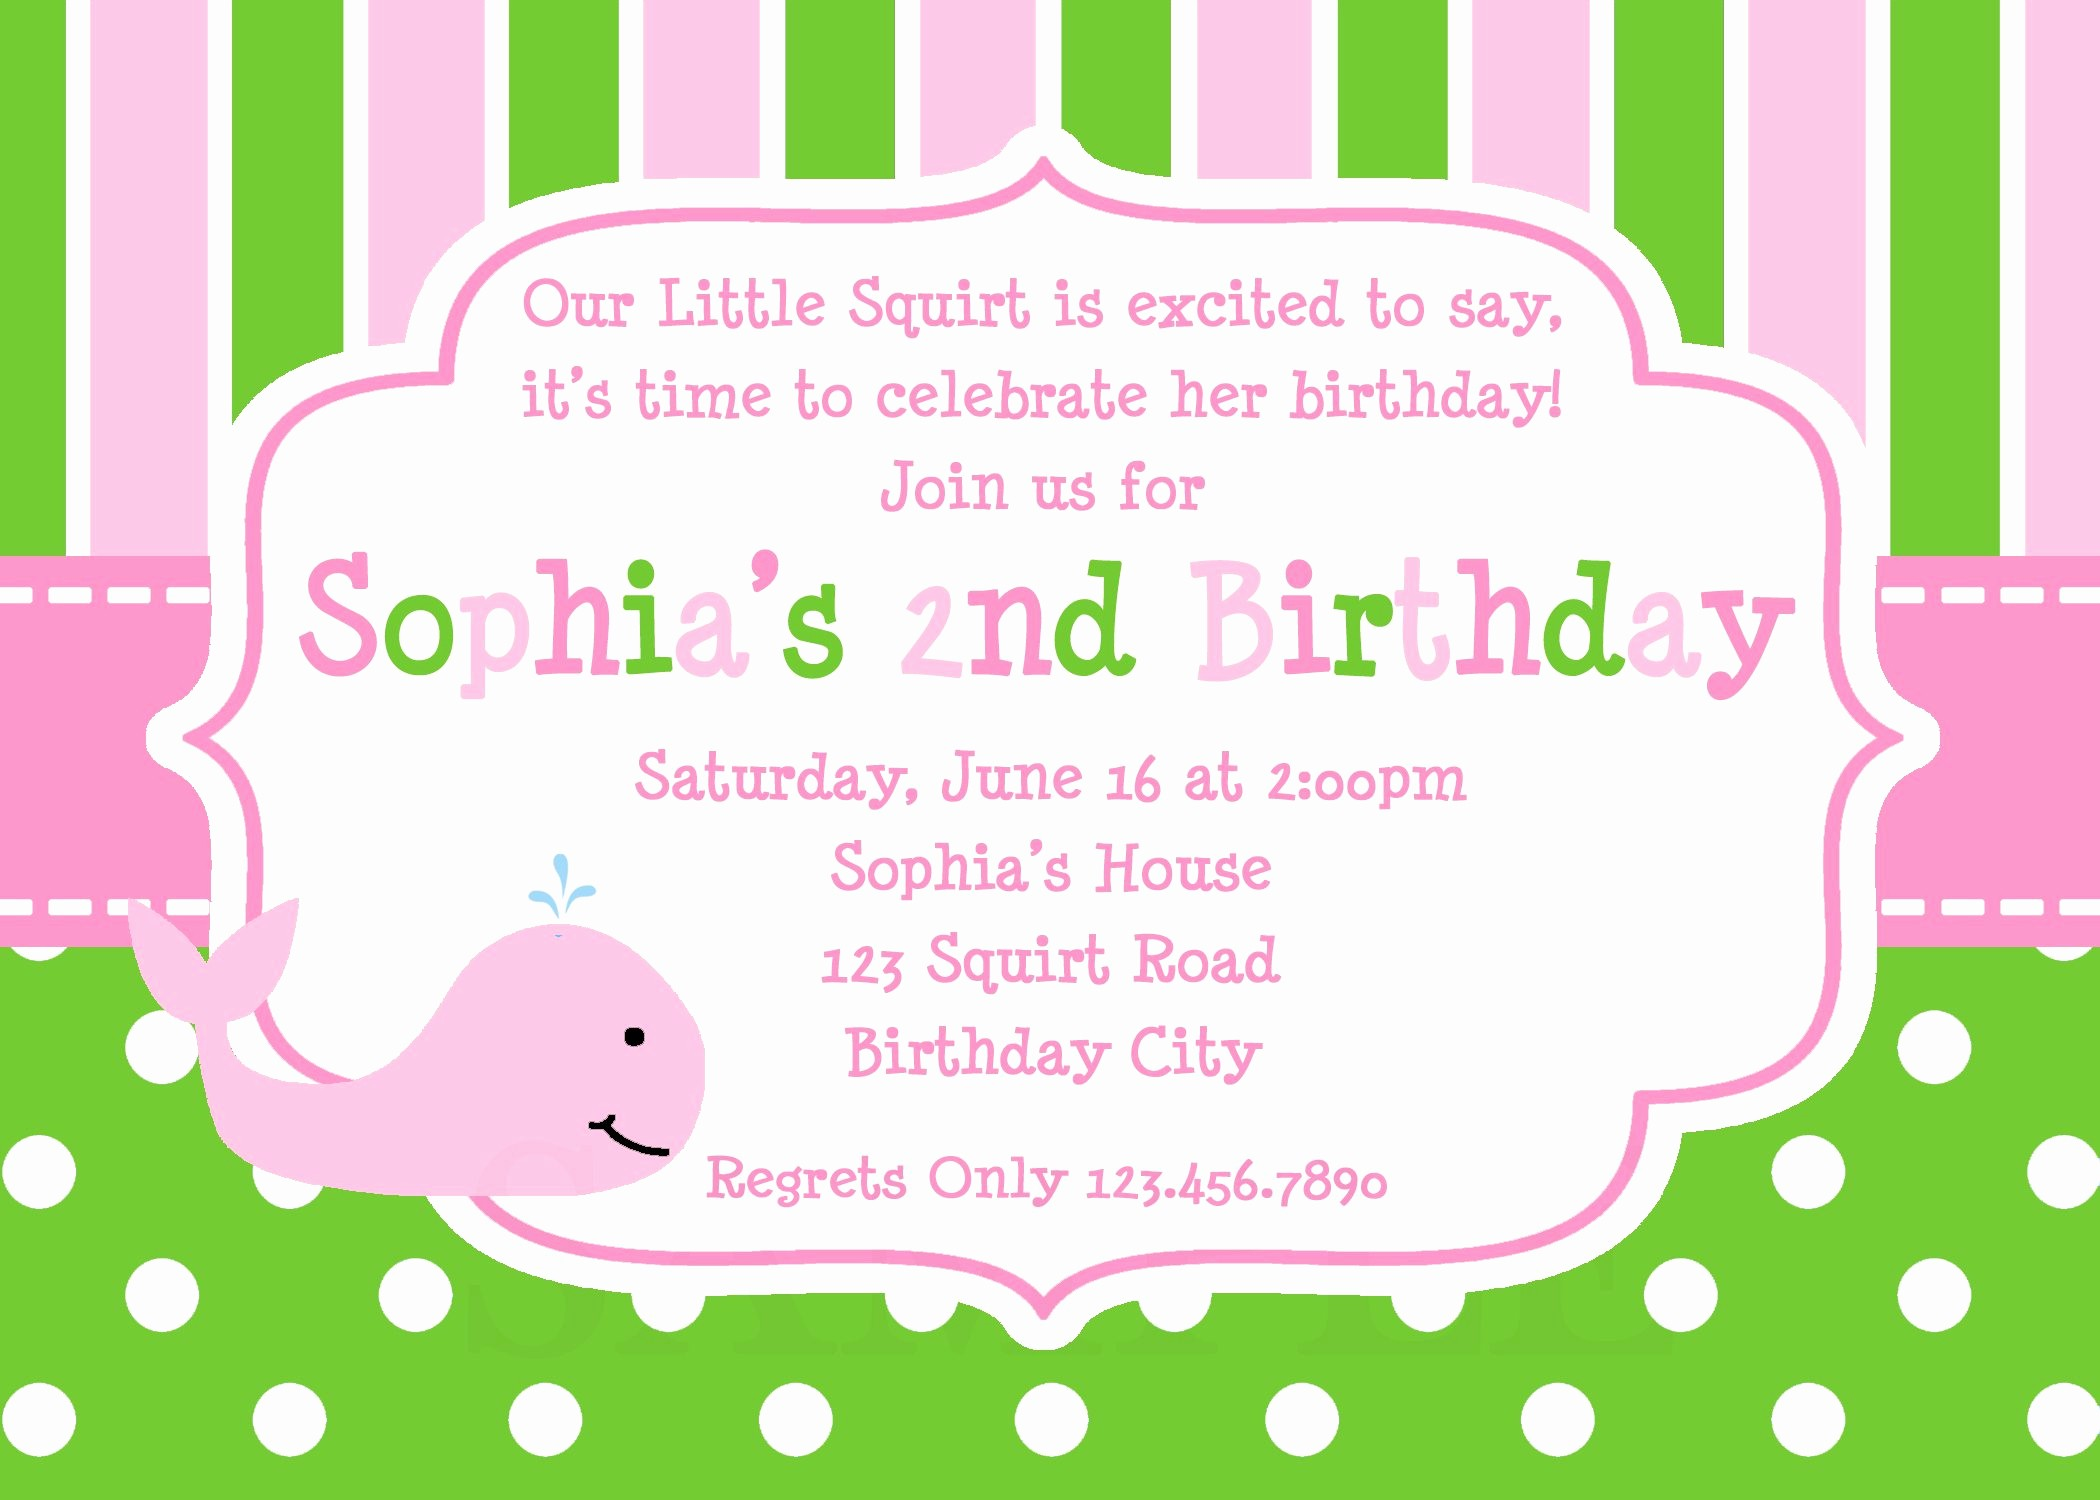 Birthday Party Invitation Card Template Elegant Invitation Birthday Card Invitation Birthday Card